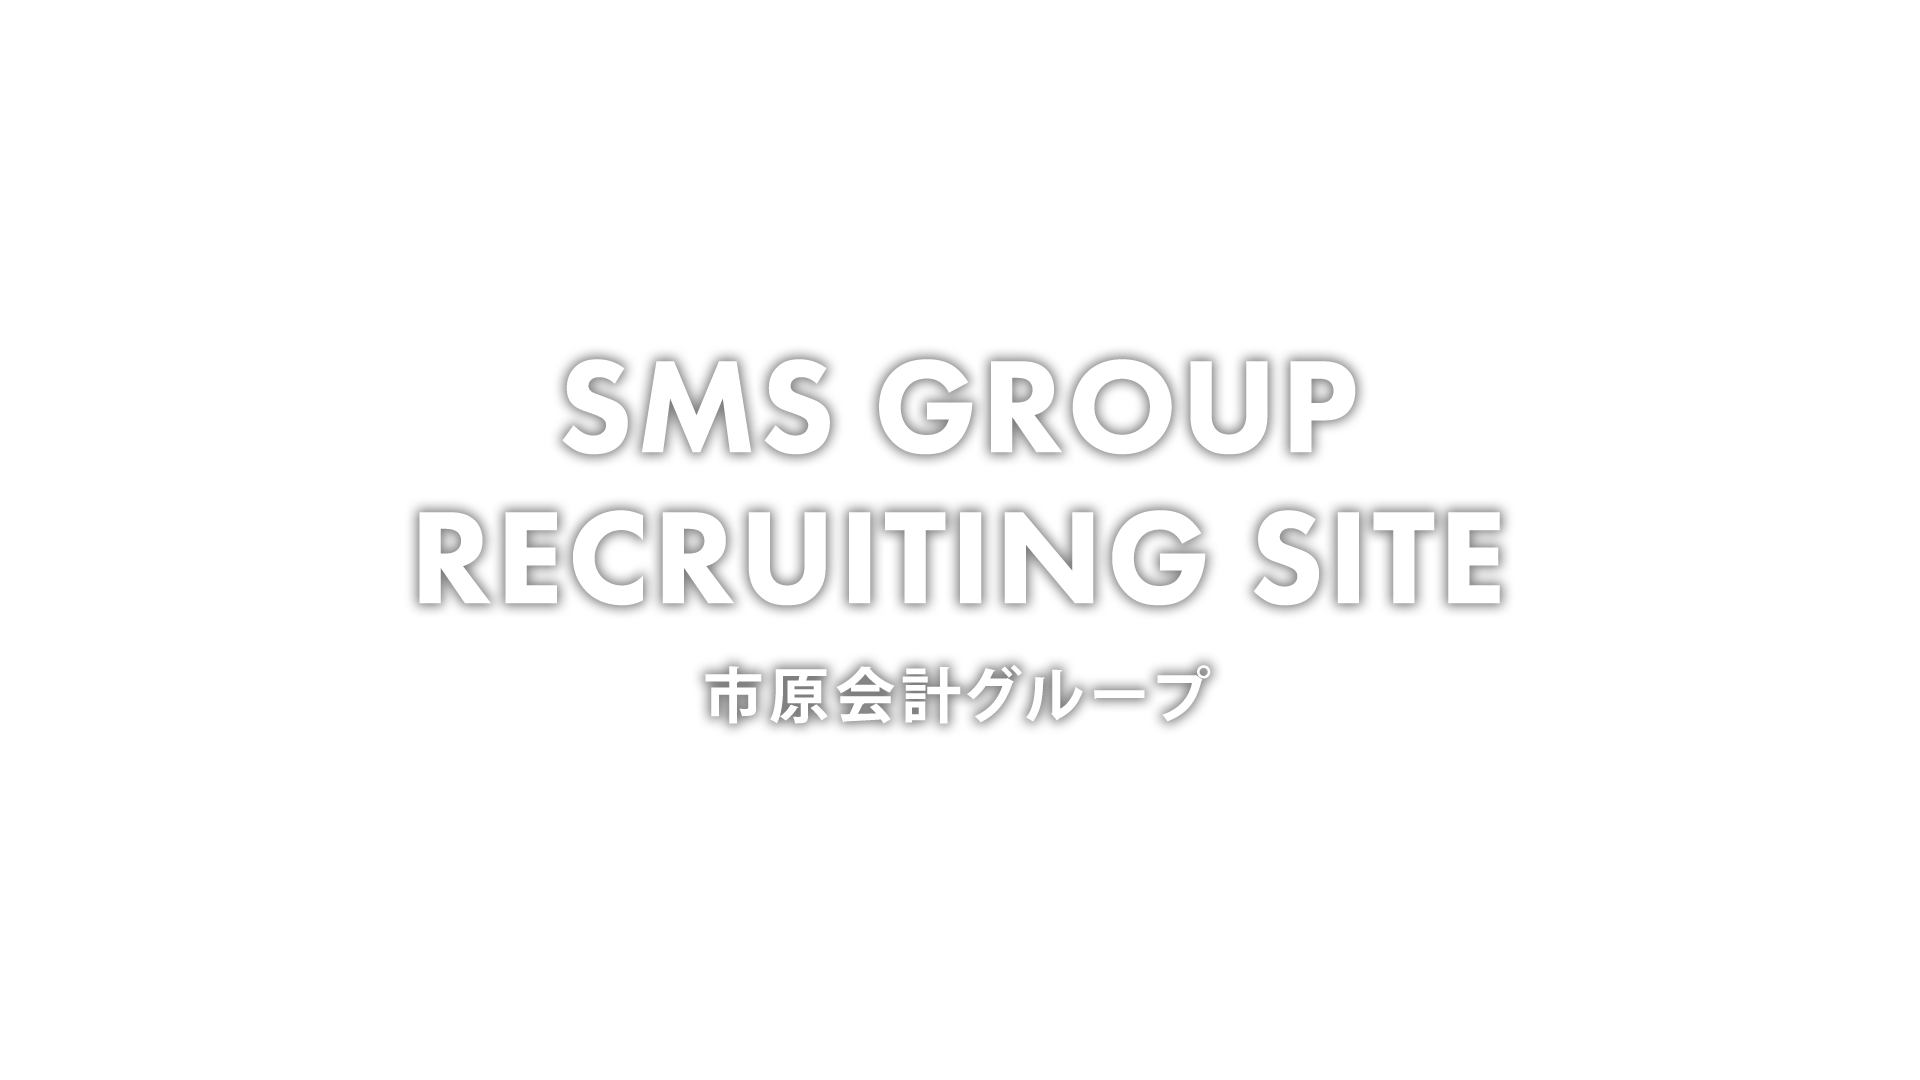 SMS GROOUP RECRUITING SITE